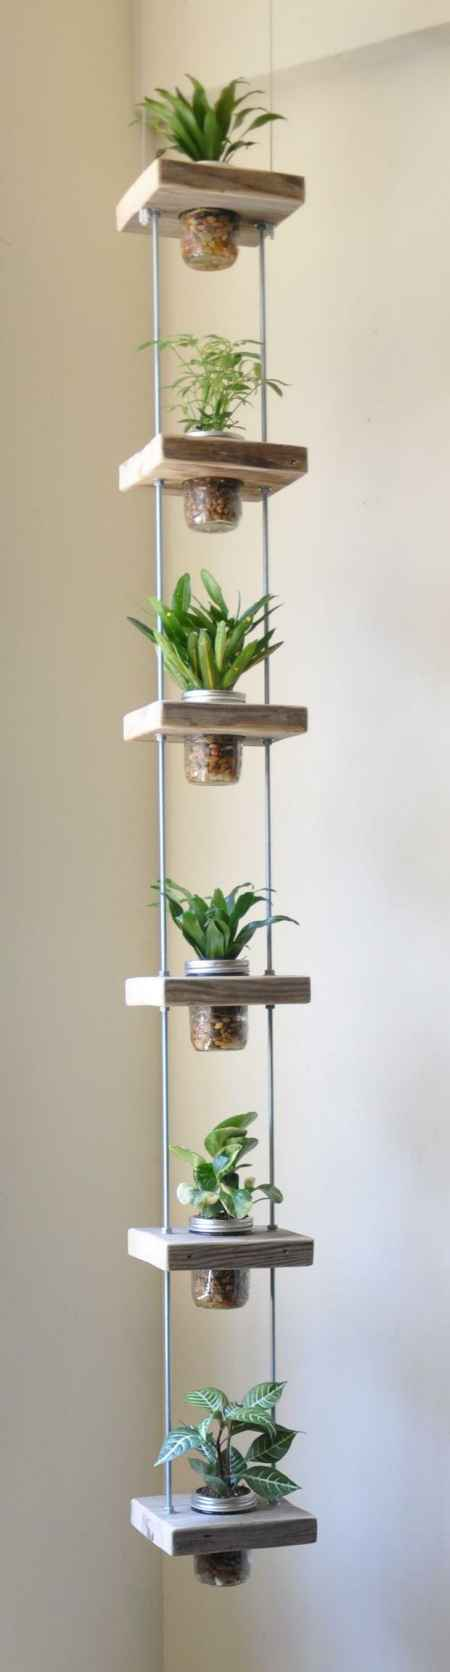 3-best-ways-to-repurpose-glass-bottles-and-jars